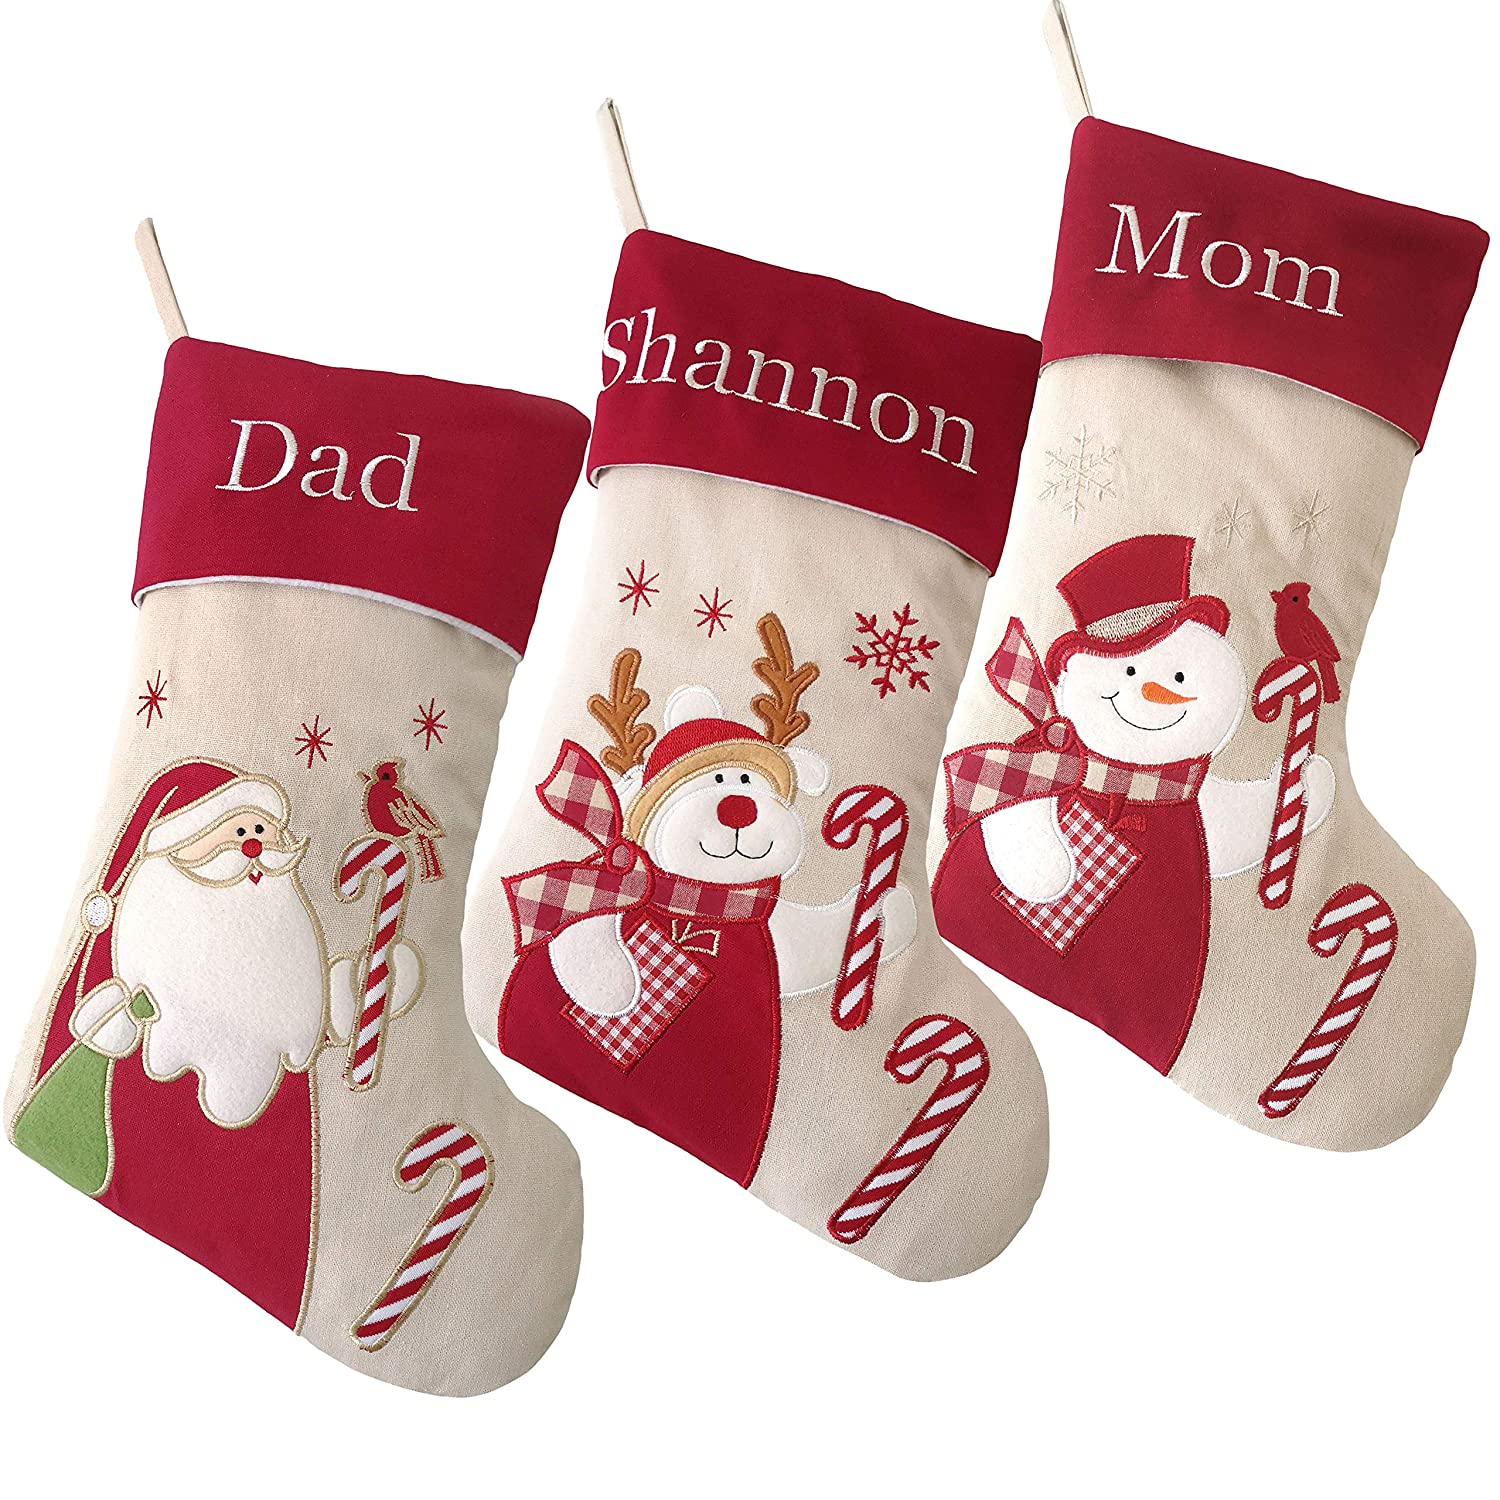 ade83f2687c Amazon.com  WEWILL Personalized Christmas Stockings Home Decoration Gifts  for Family Members